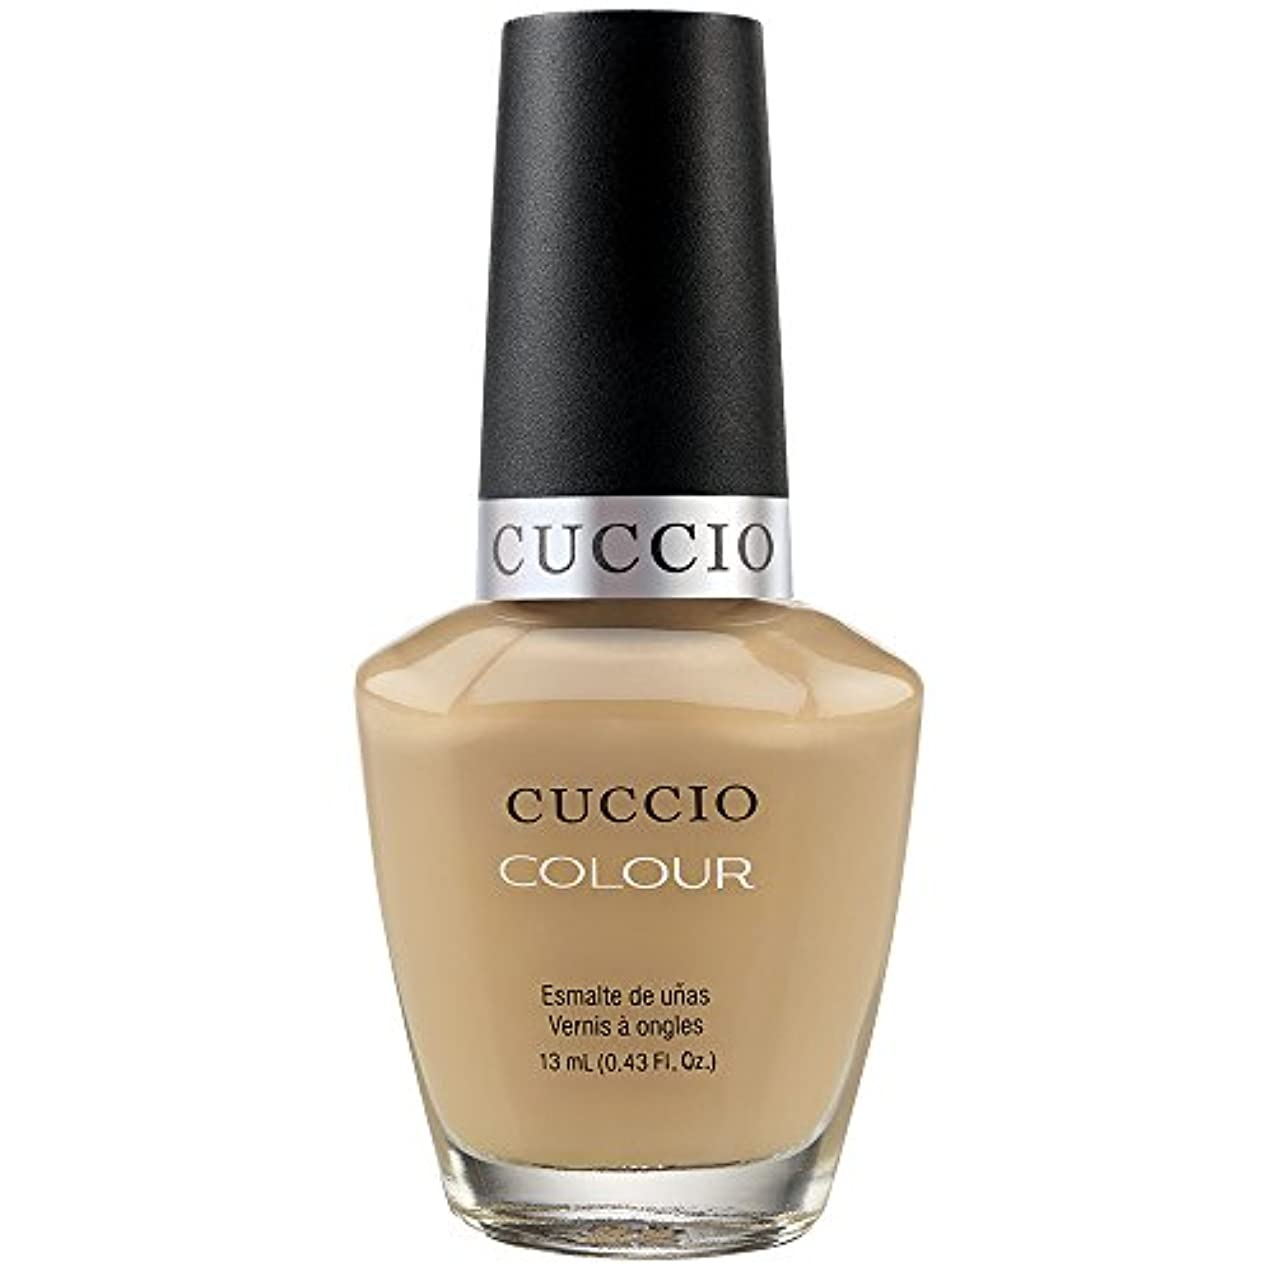 浮浪者ふざけたフォーカスCuccio Colour Gloss Lacquer - Java Va Voom - 0.43oz / 13ml